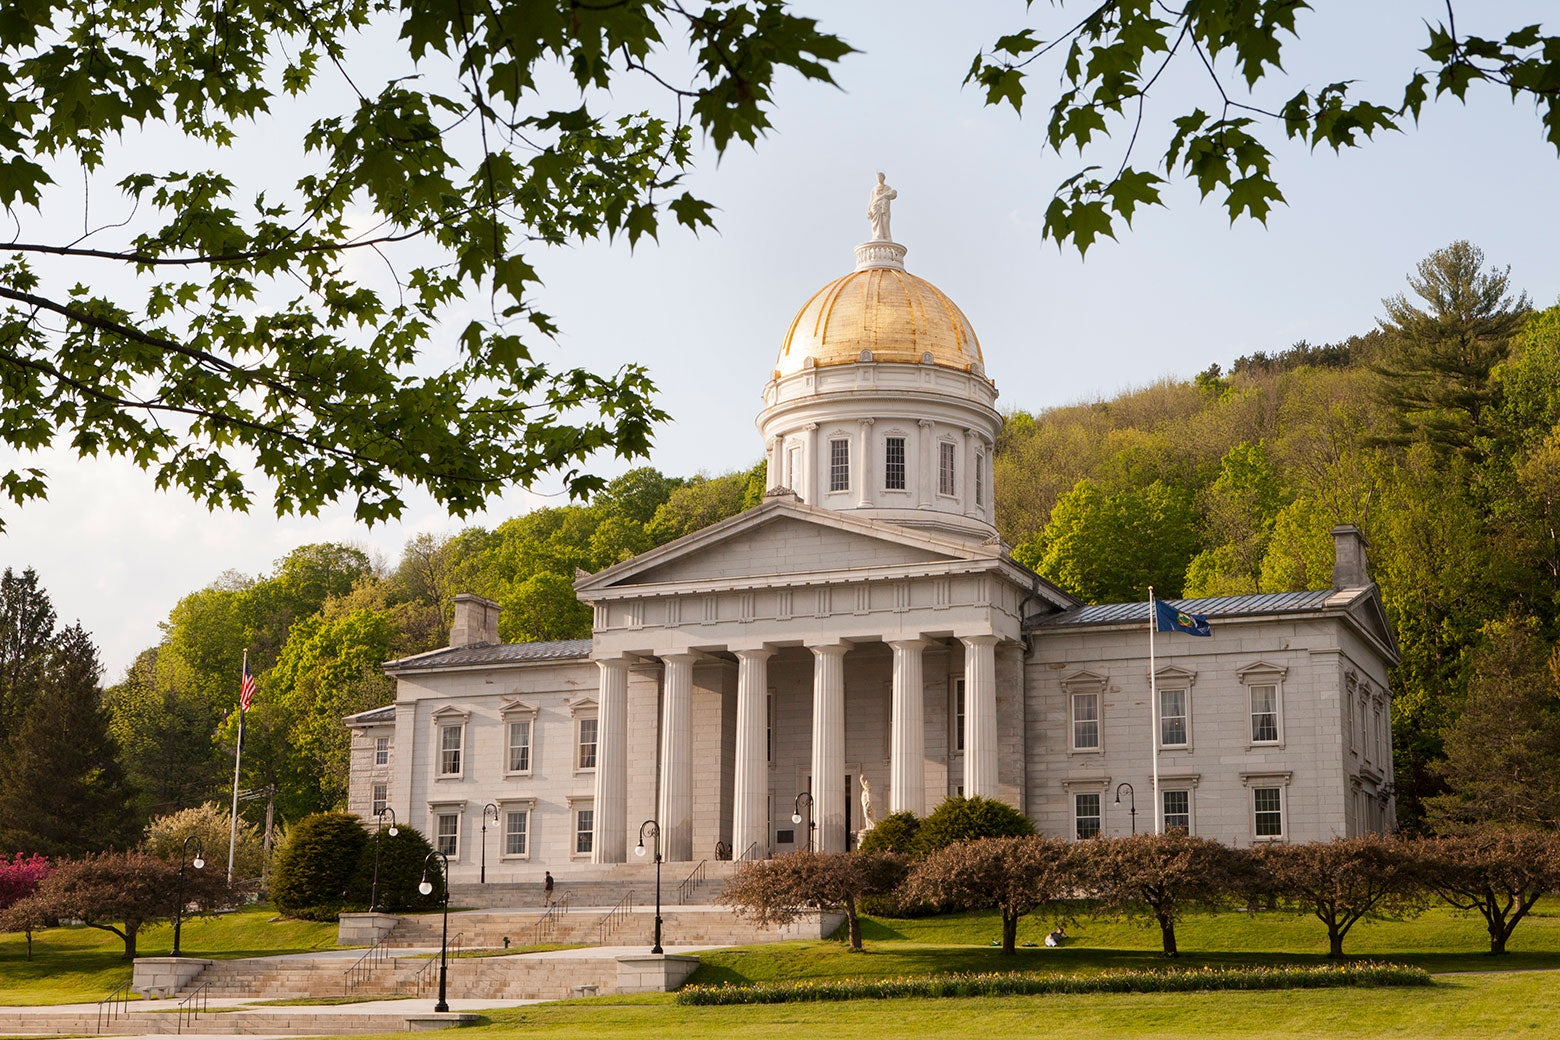 The Vermont Statehouse